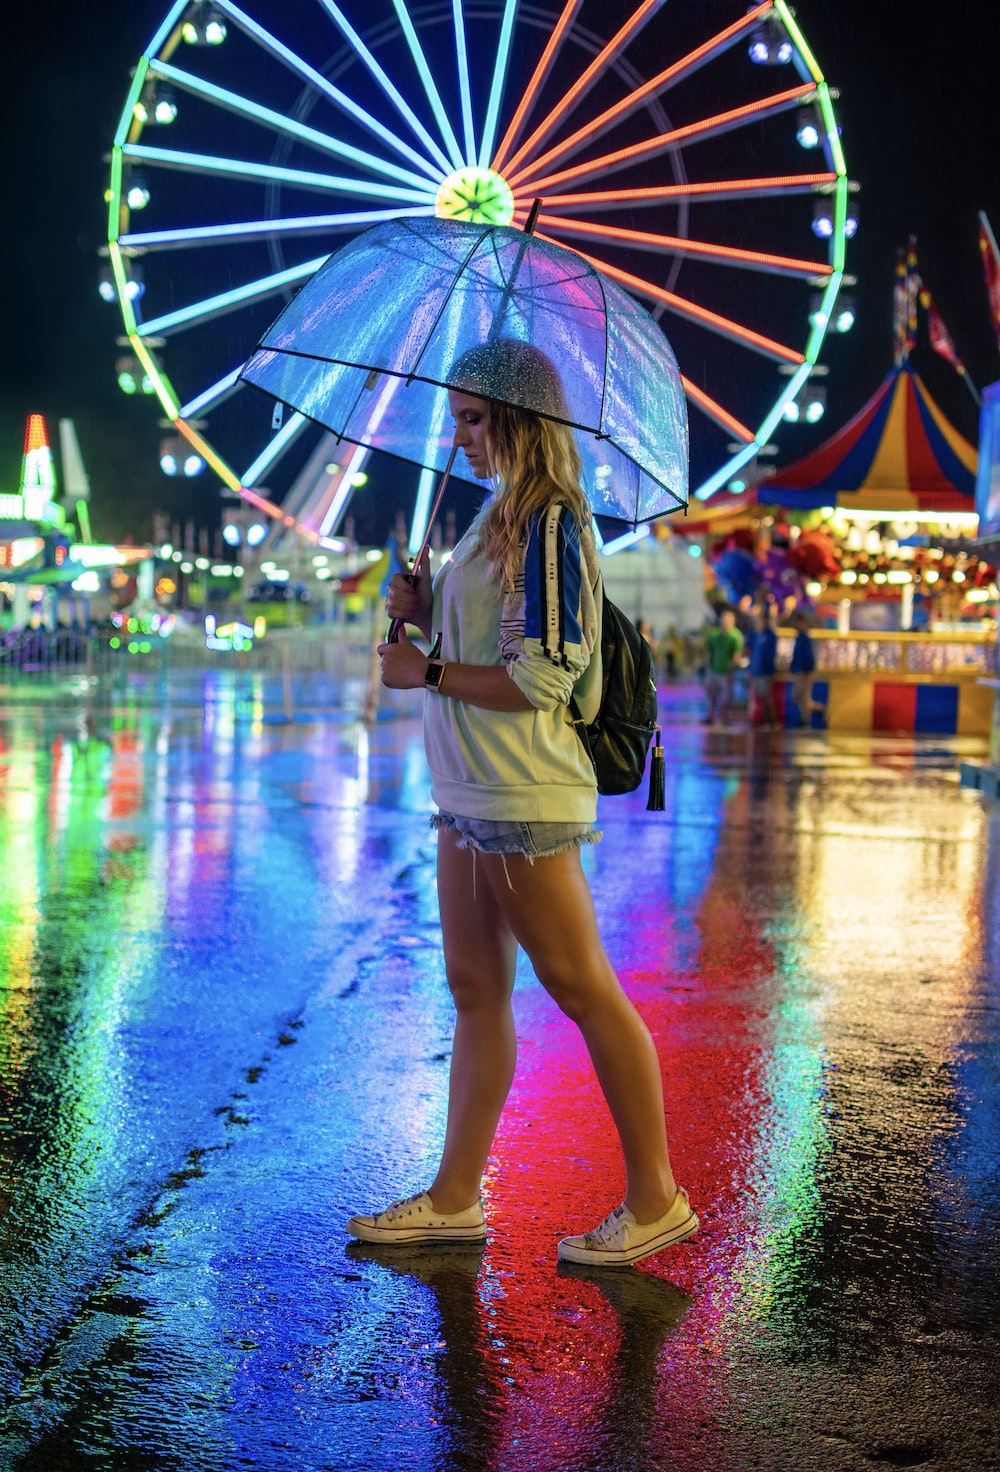 100 carnival pictures download free images on unsplash